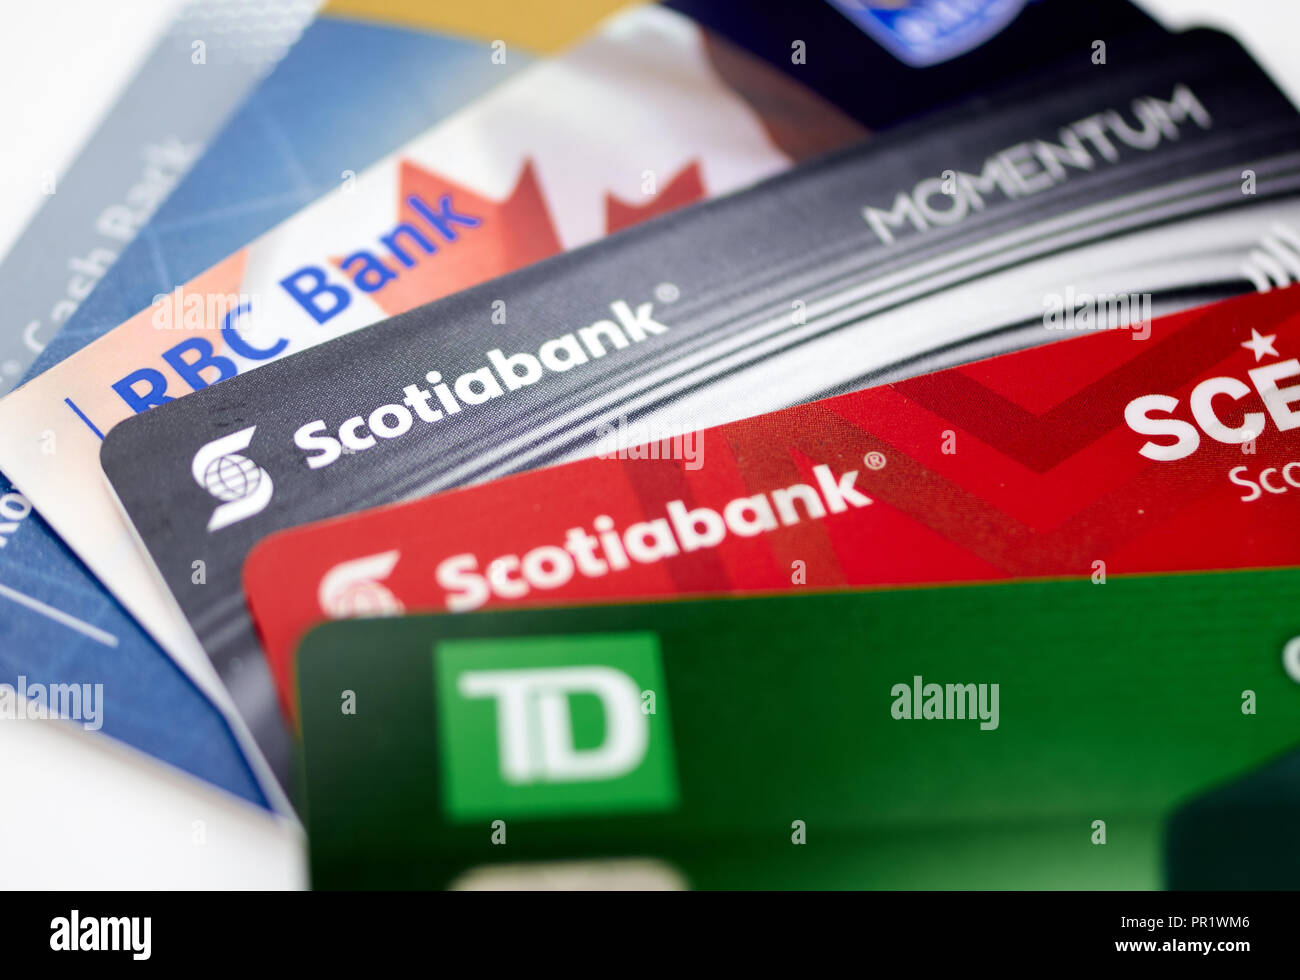 MONTREAL, CANADA - SEPTEMBER 21, 2018: Credit cards of